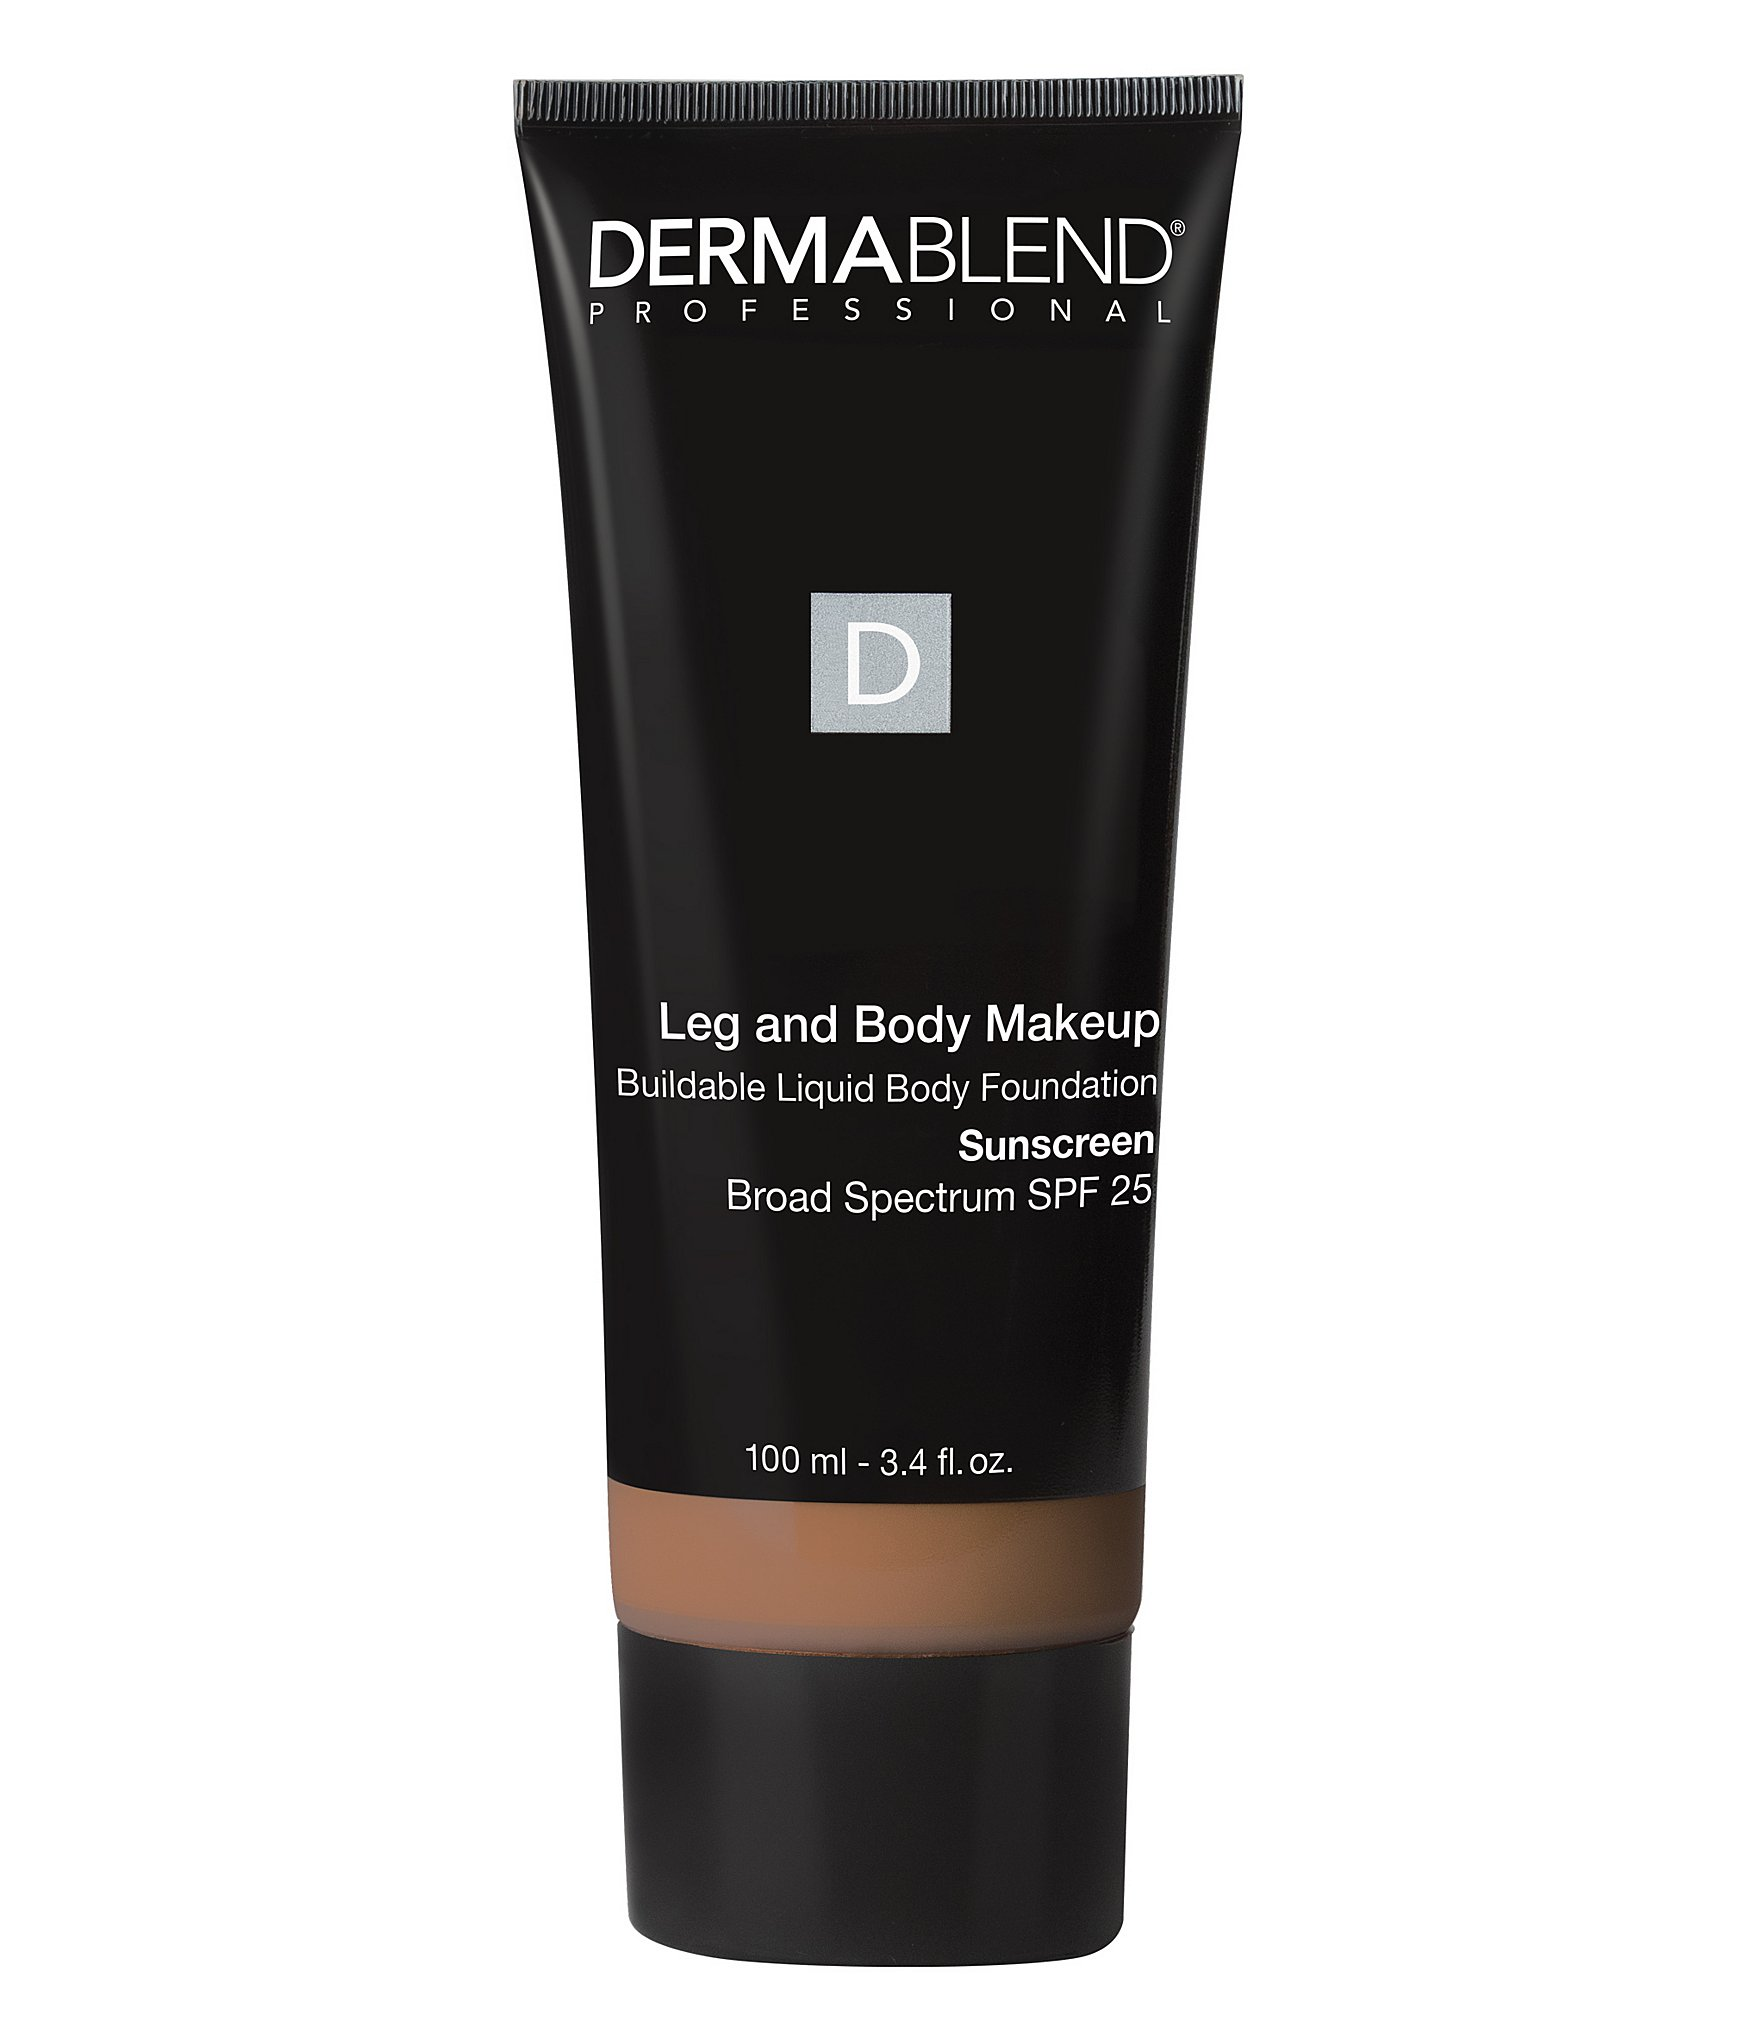 Dermablend Leg Amp Body Makeup Buildable Liquid Body